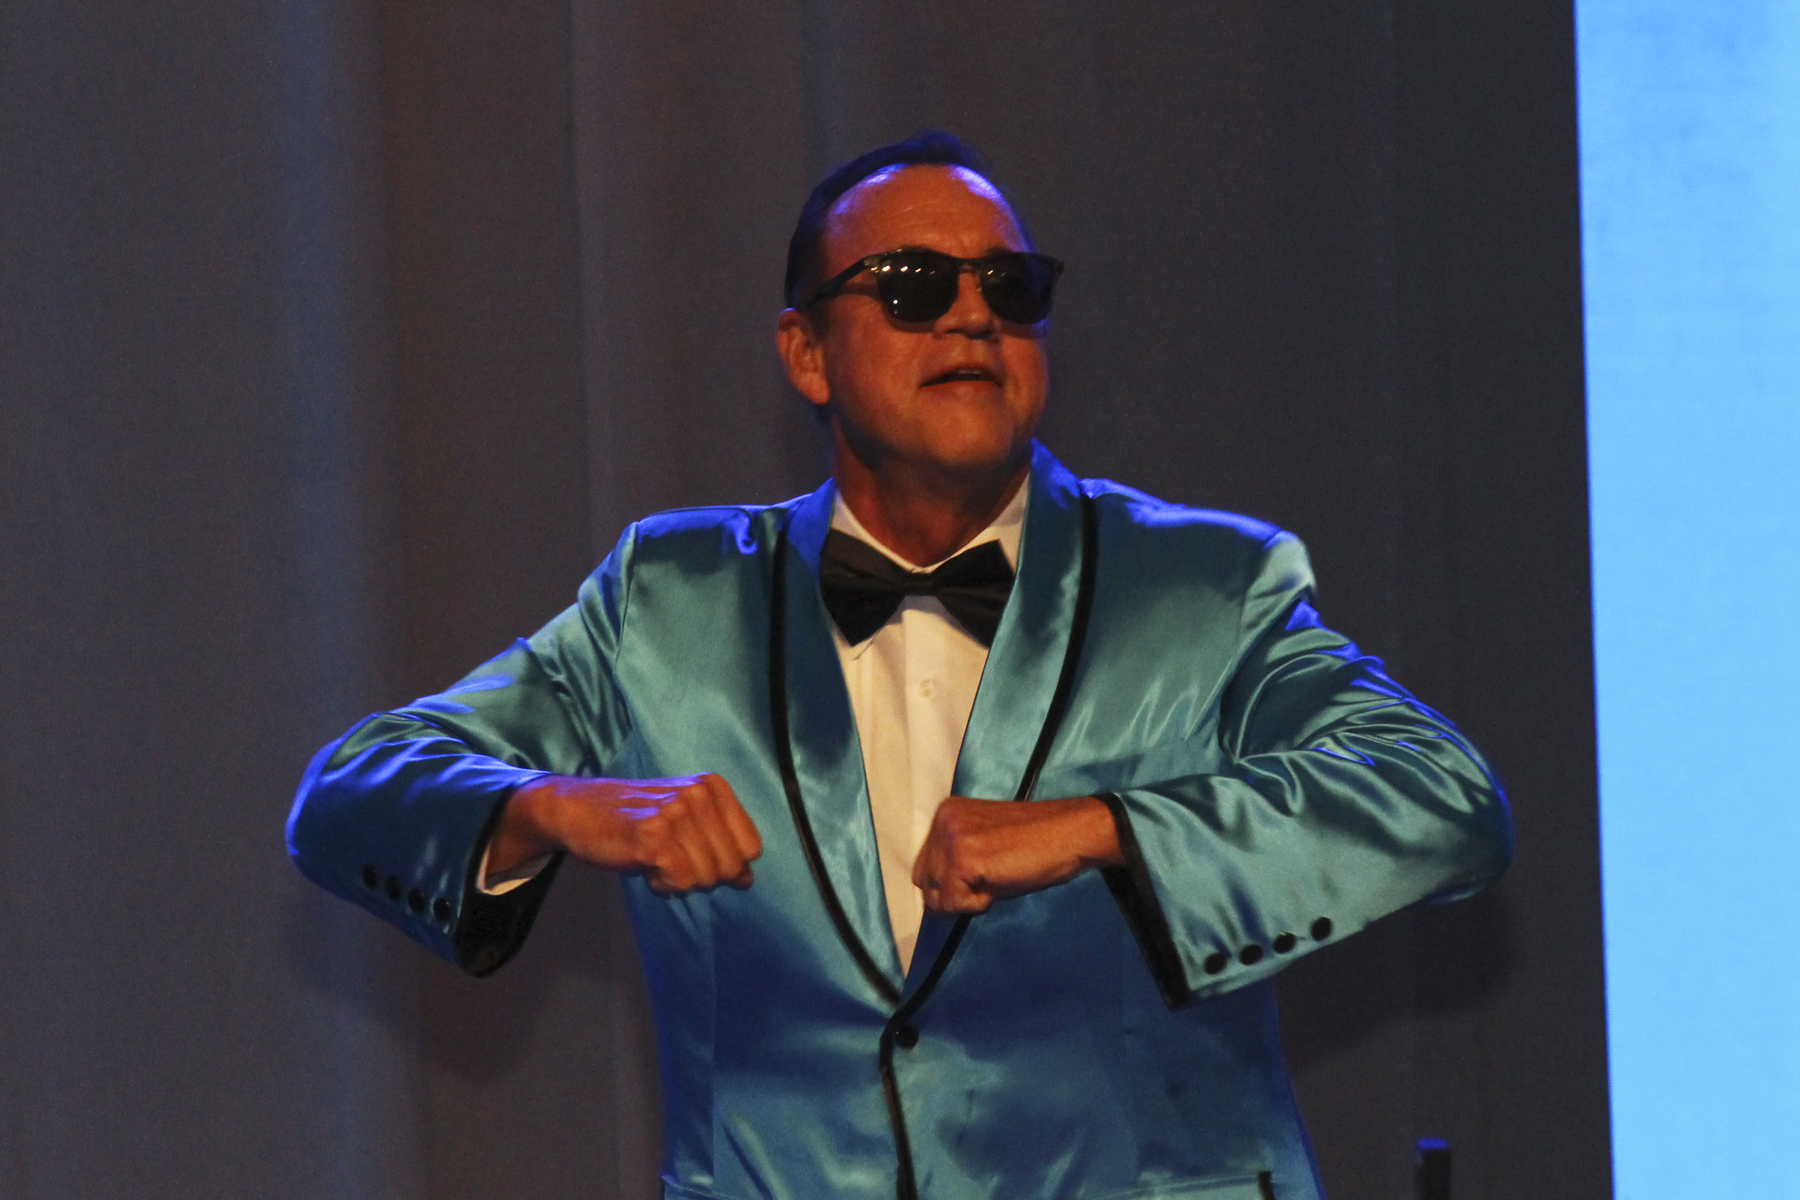 """2016 AN EVENING AROUND THE WORLD: CFS Gangnam Style Dancer Anton Krucky (Tissue Genesis, Inc.) shows his """"PSY"""" moves!"""